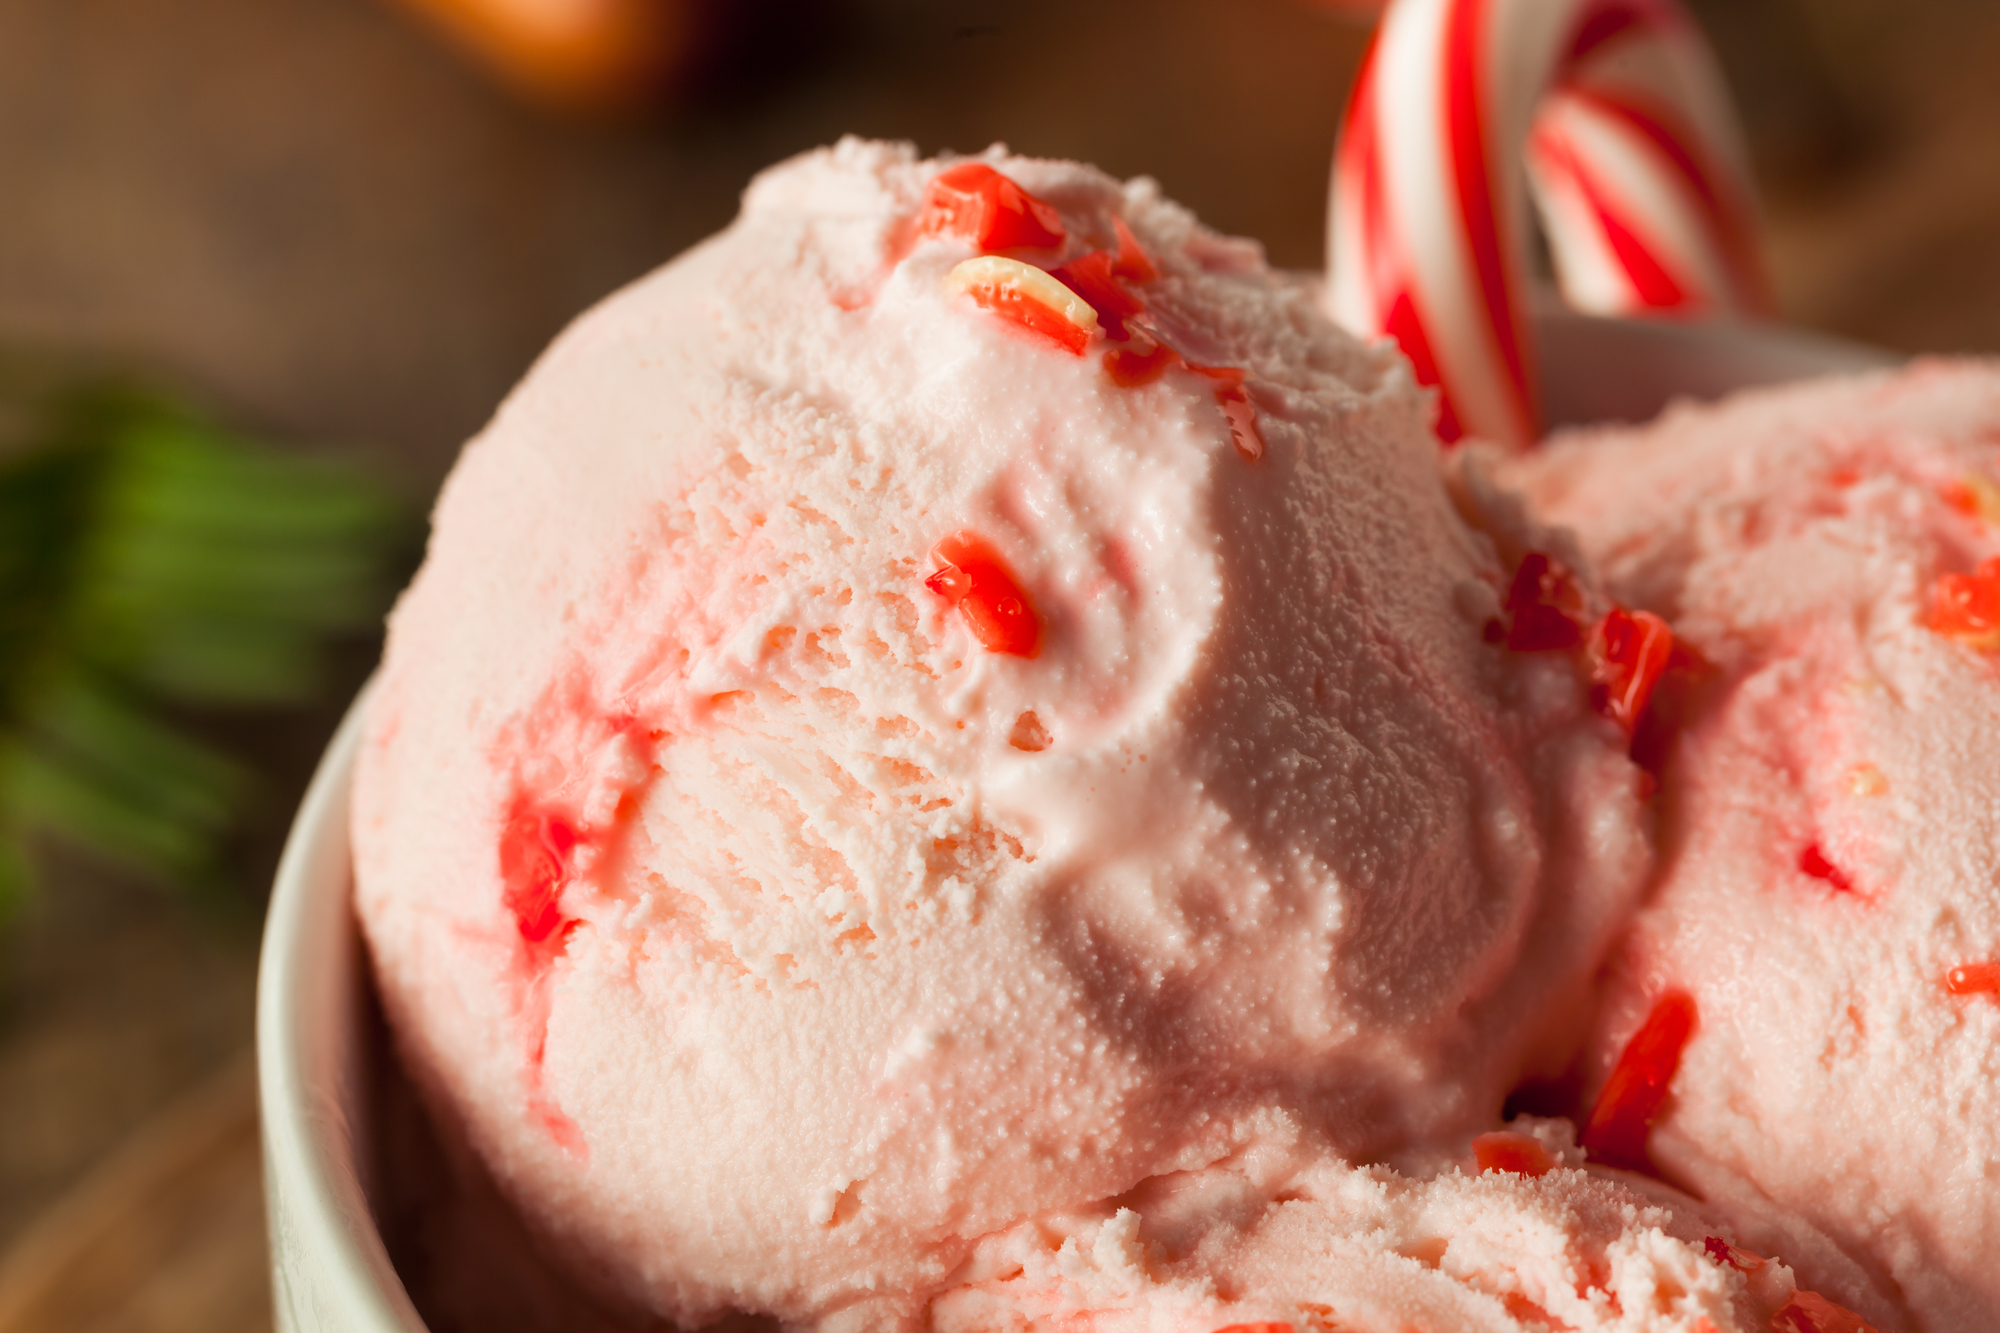 Peppermint Stick Ice Cream